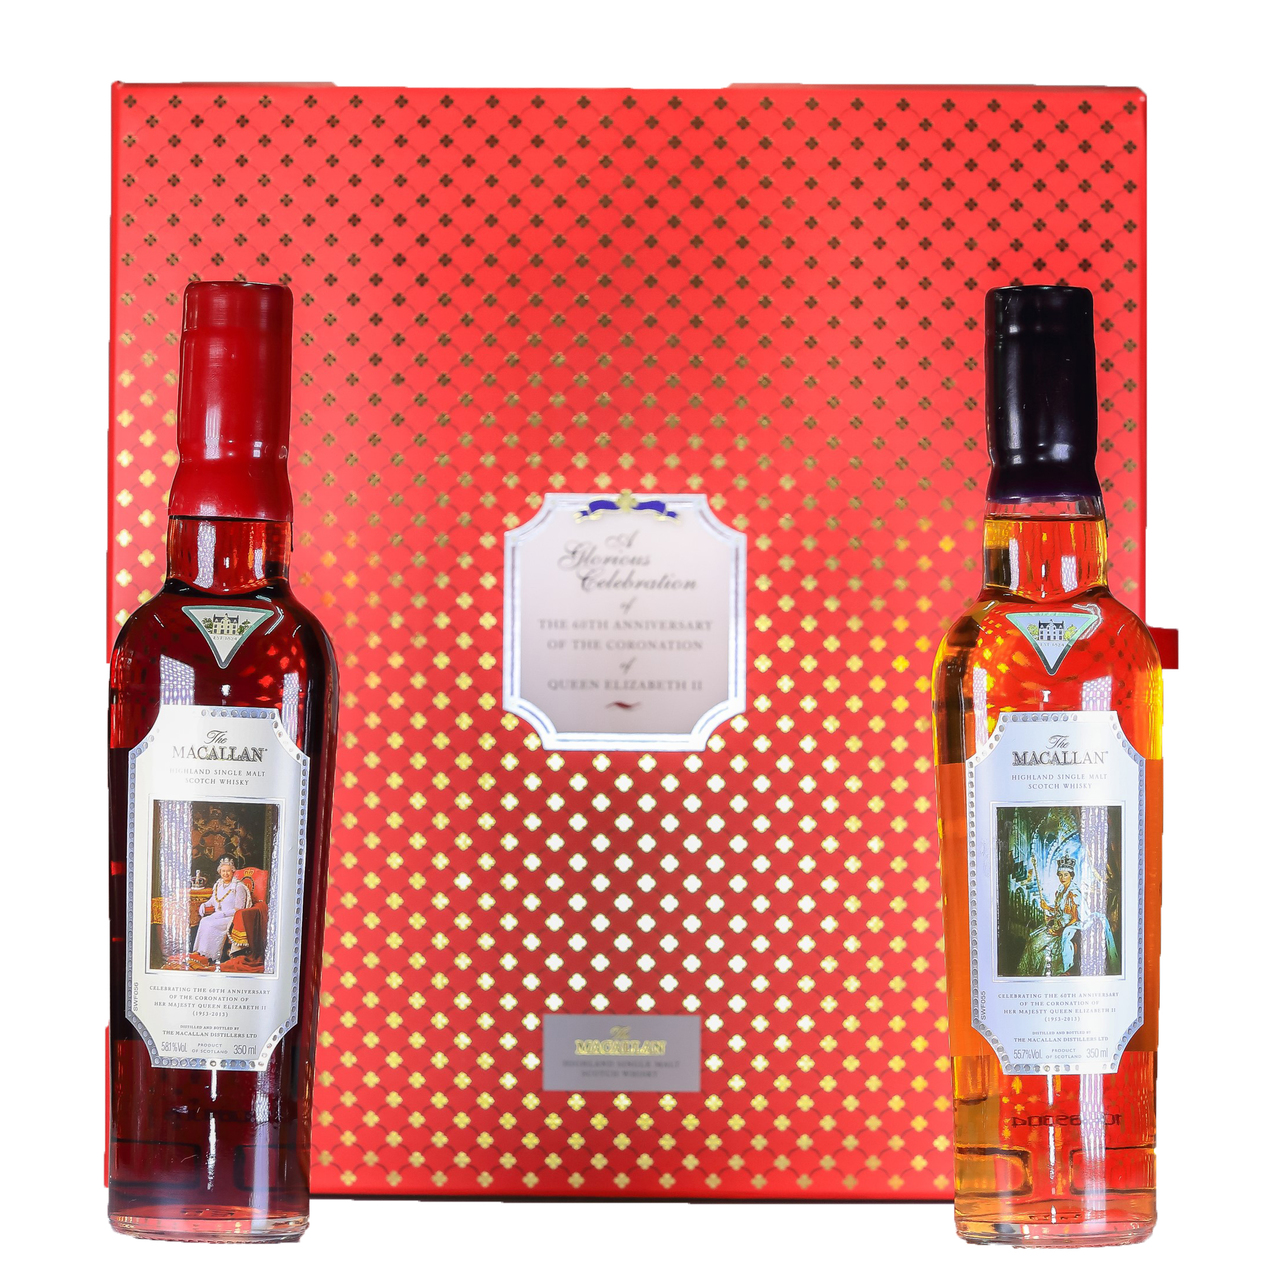 Macallan coronation bottling queen elizabeth ii 60th anniversary